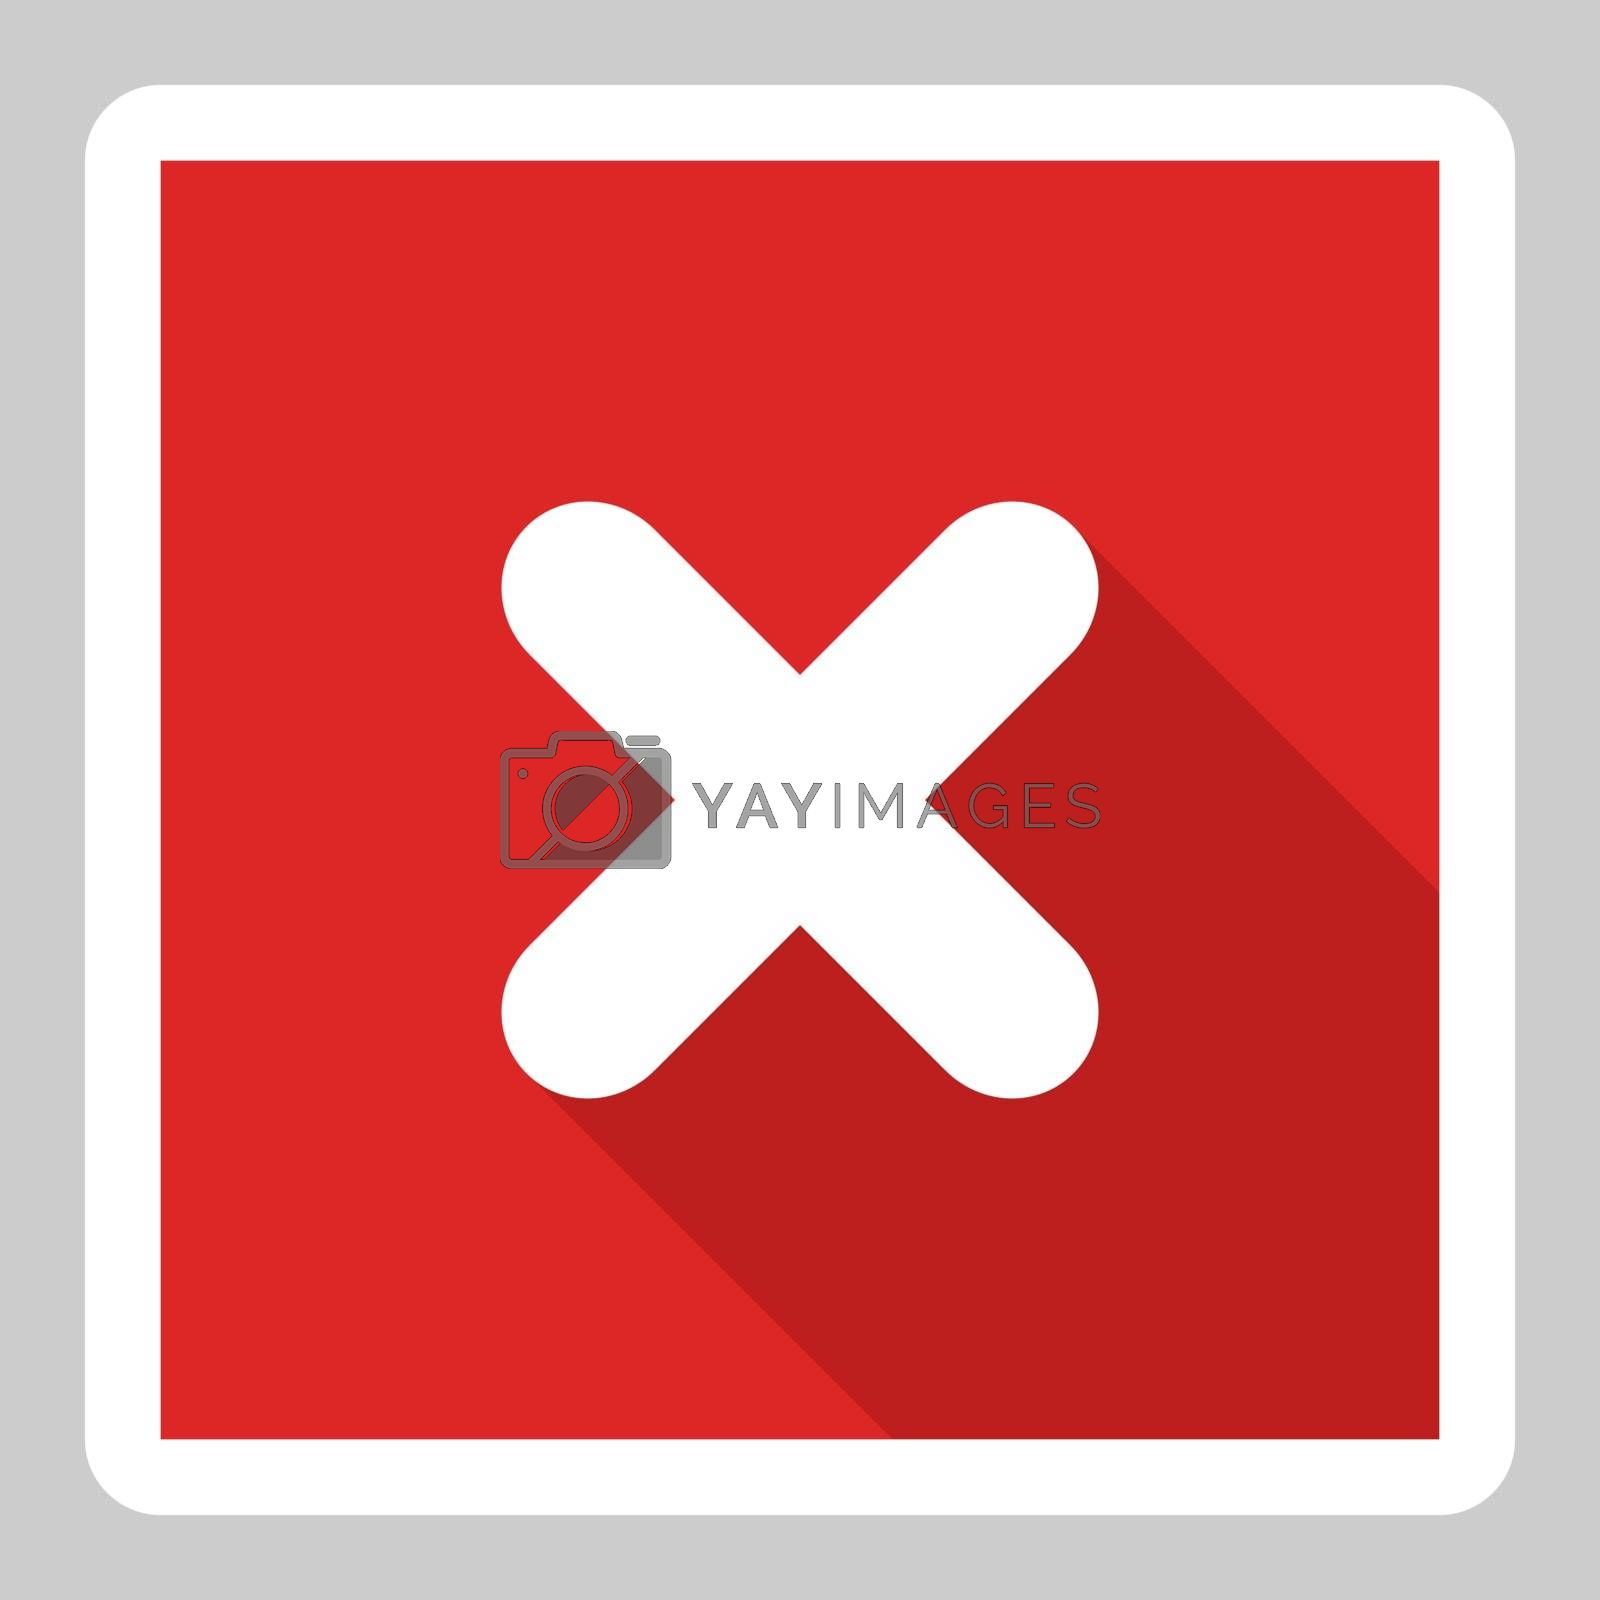 Wrong marks, Cross marks, Rejected, Disapproved, No, False, Not Ok, Wrong Choices, Task Completion, Voting. - vector mark symbols in red. White stroke and shadow design. Isolated icon. Flat style vector illustration.